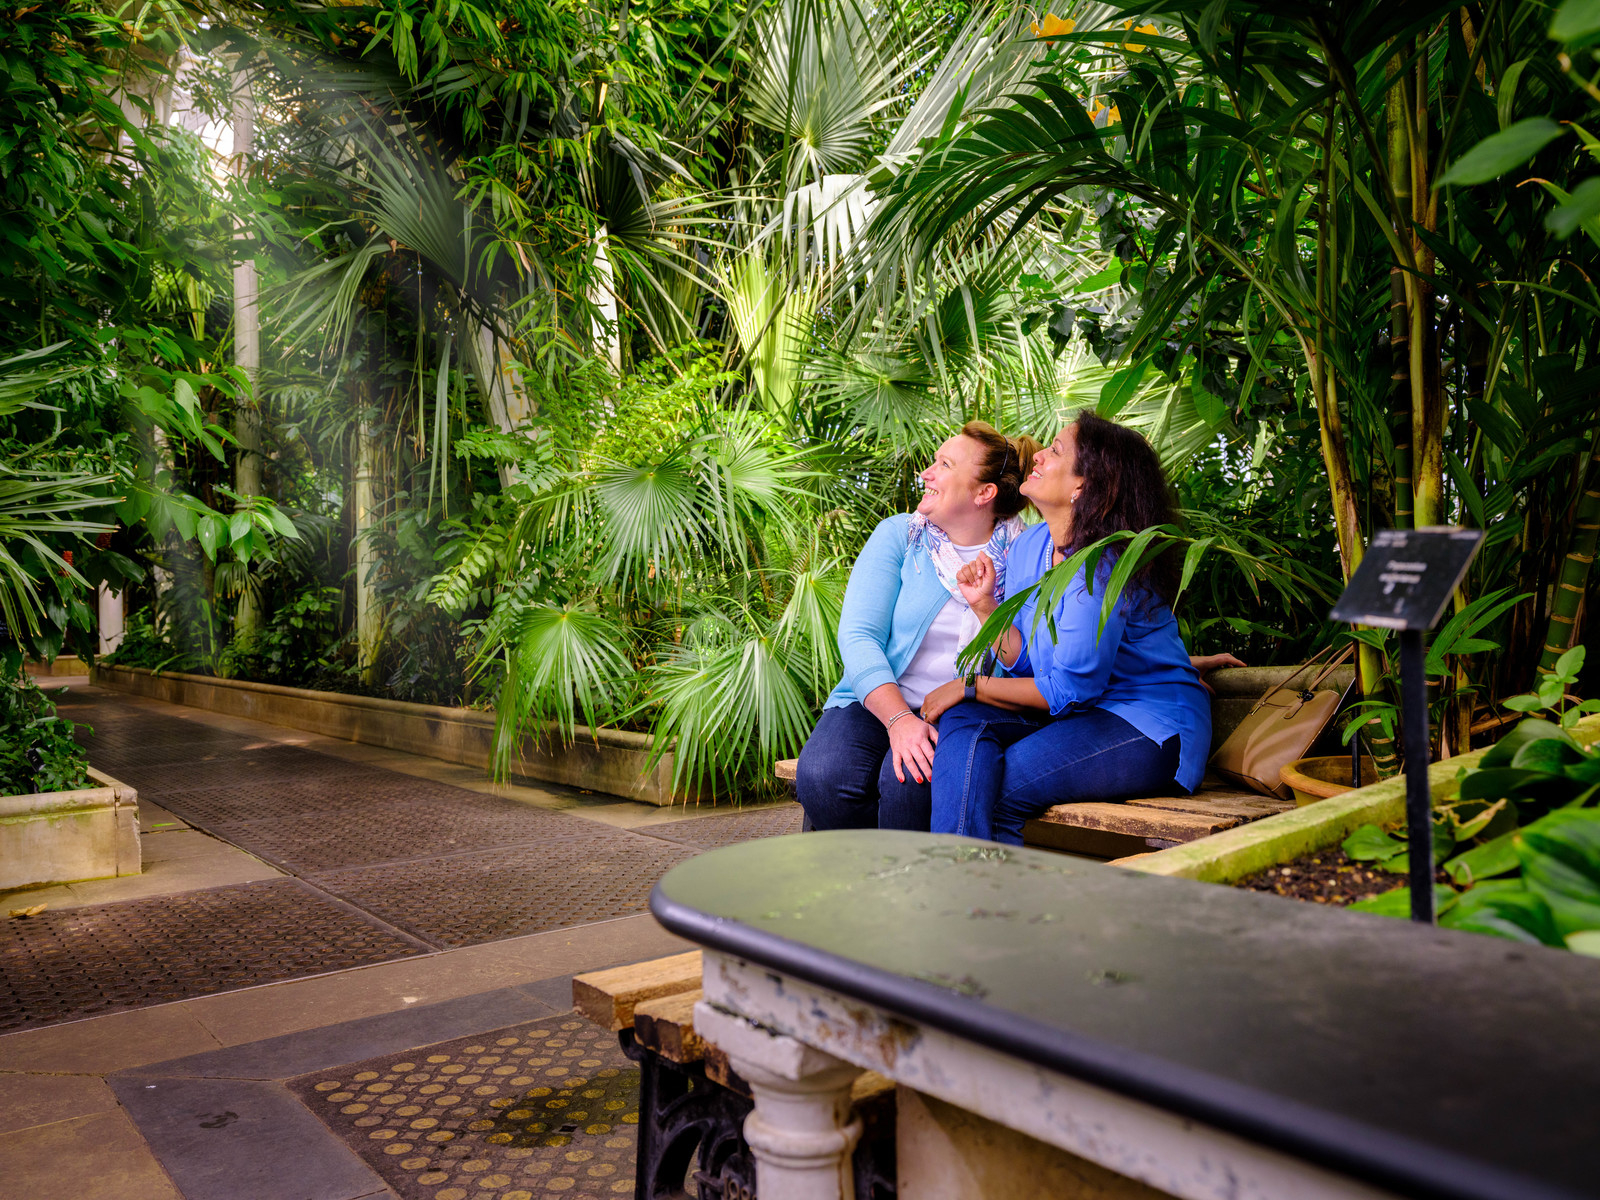 Two women sit on a bench and looking up in admiration at the Palm House display